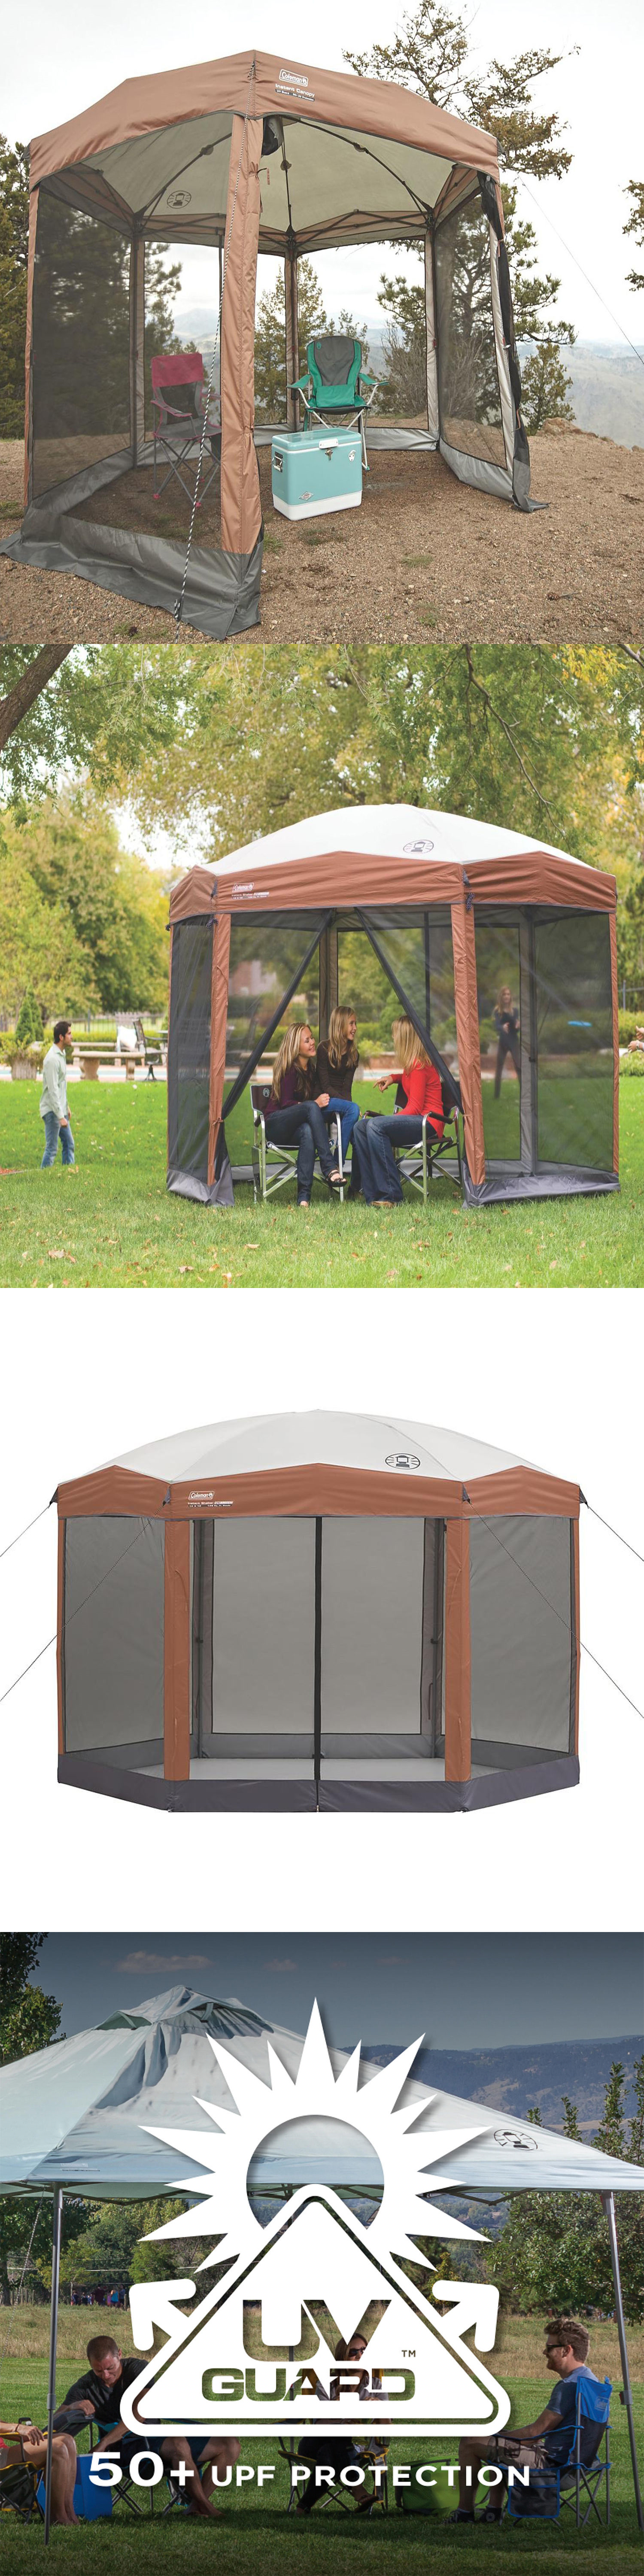 Canopies and Shelters 179011 Outdoor Screened Canopy Tent 12 X10 Instant Shelter Patio C&ing House & Canopies and Shelters 179011: Outdoor Screened Canopy Tent 12 X10 ...